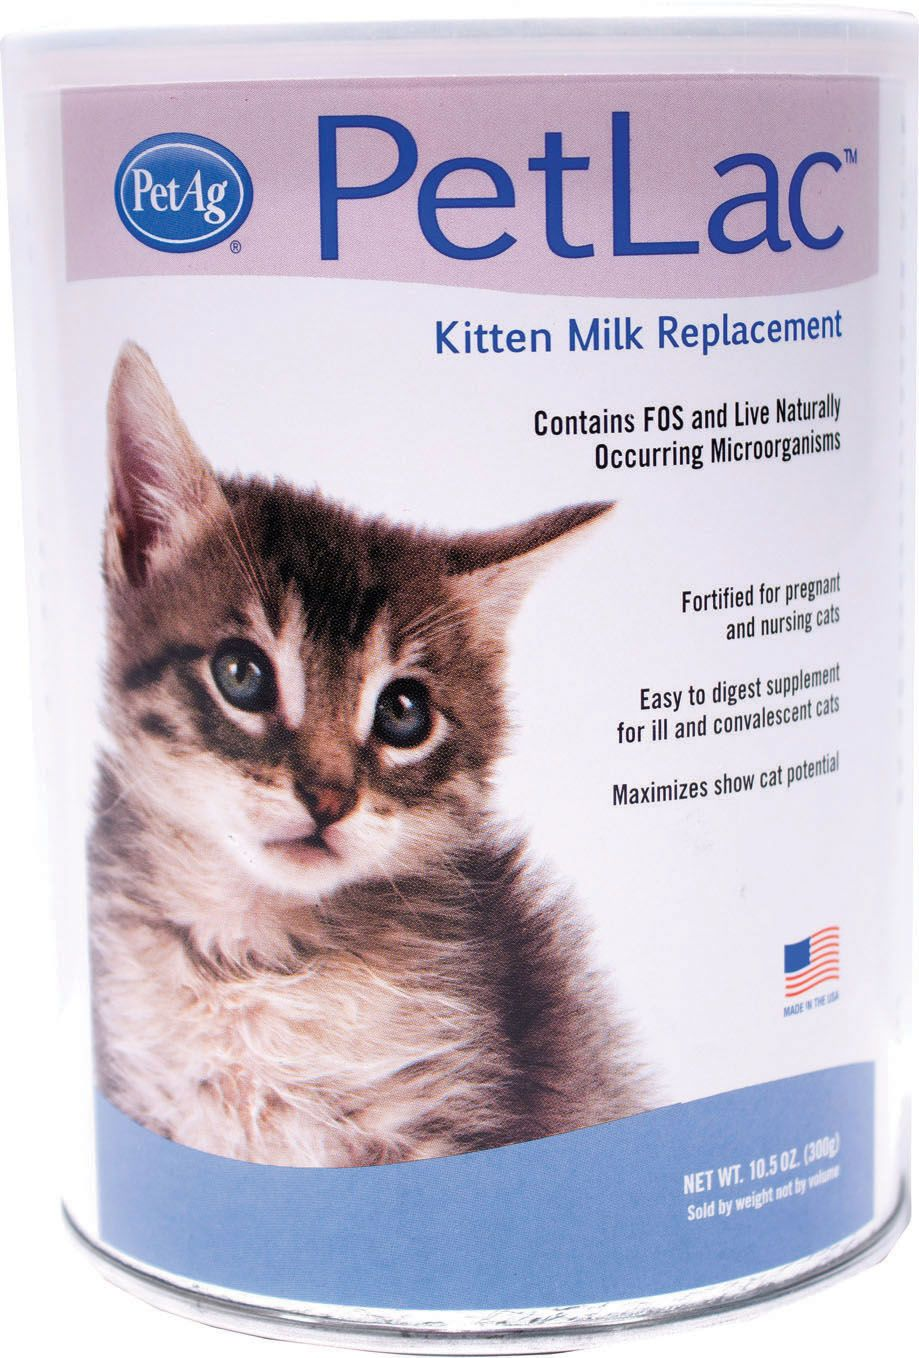 Cats Petlac Kitten Milk Replacement Powder By Pet Ag 10 5 Ounce Em 2020